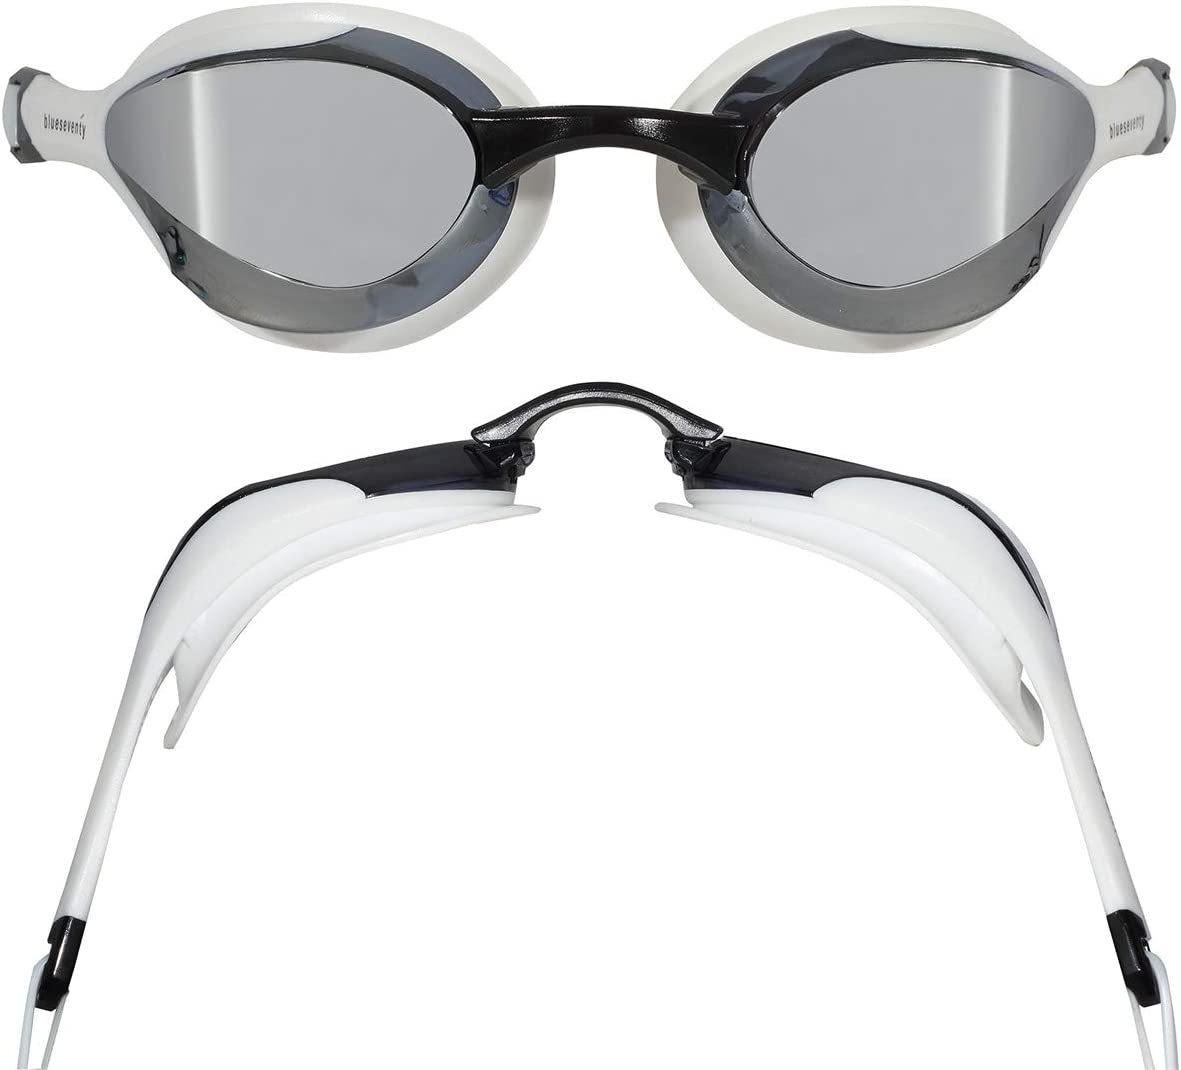 Free shipping on posting reviews blueseventy Contour Goggle - for Luxury and Water Triathlon Open Pool